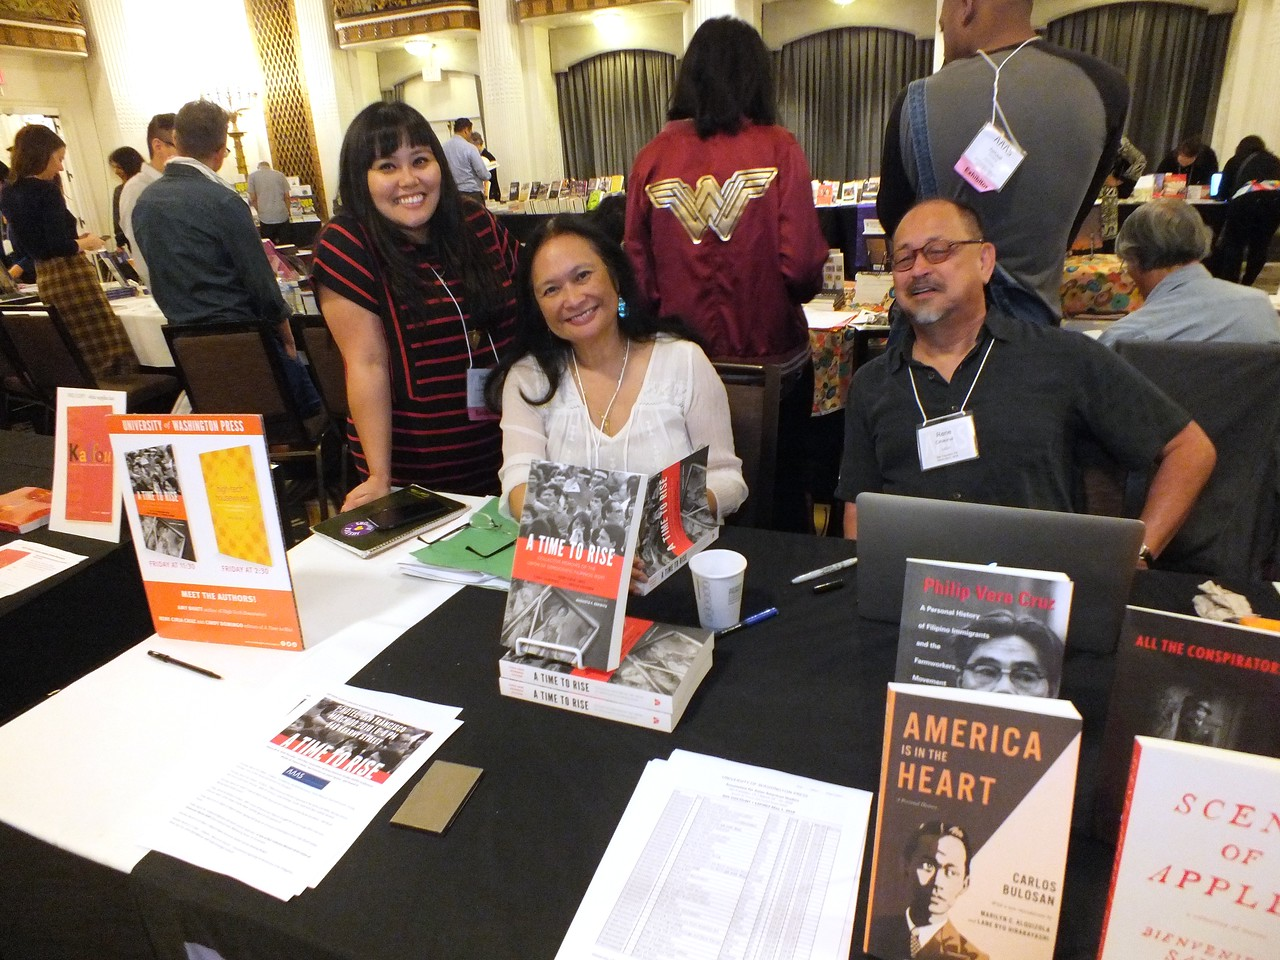 """UCLA Asian American Studies Center Publications Coordinator Barbra Ramos gets her booked signed by co-editors Cindy Domingo and Rene Ciria-Cruz of the KDP Anthology """"A Time to Rise"""" at the University of Washington Publications Table"""